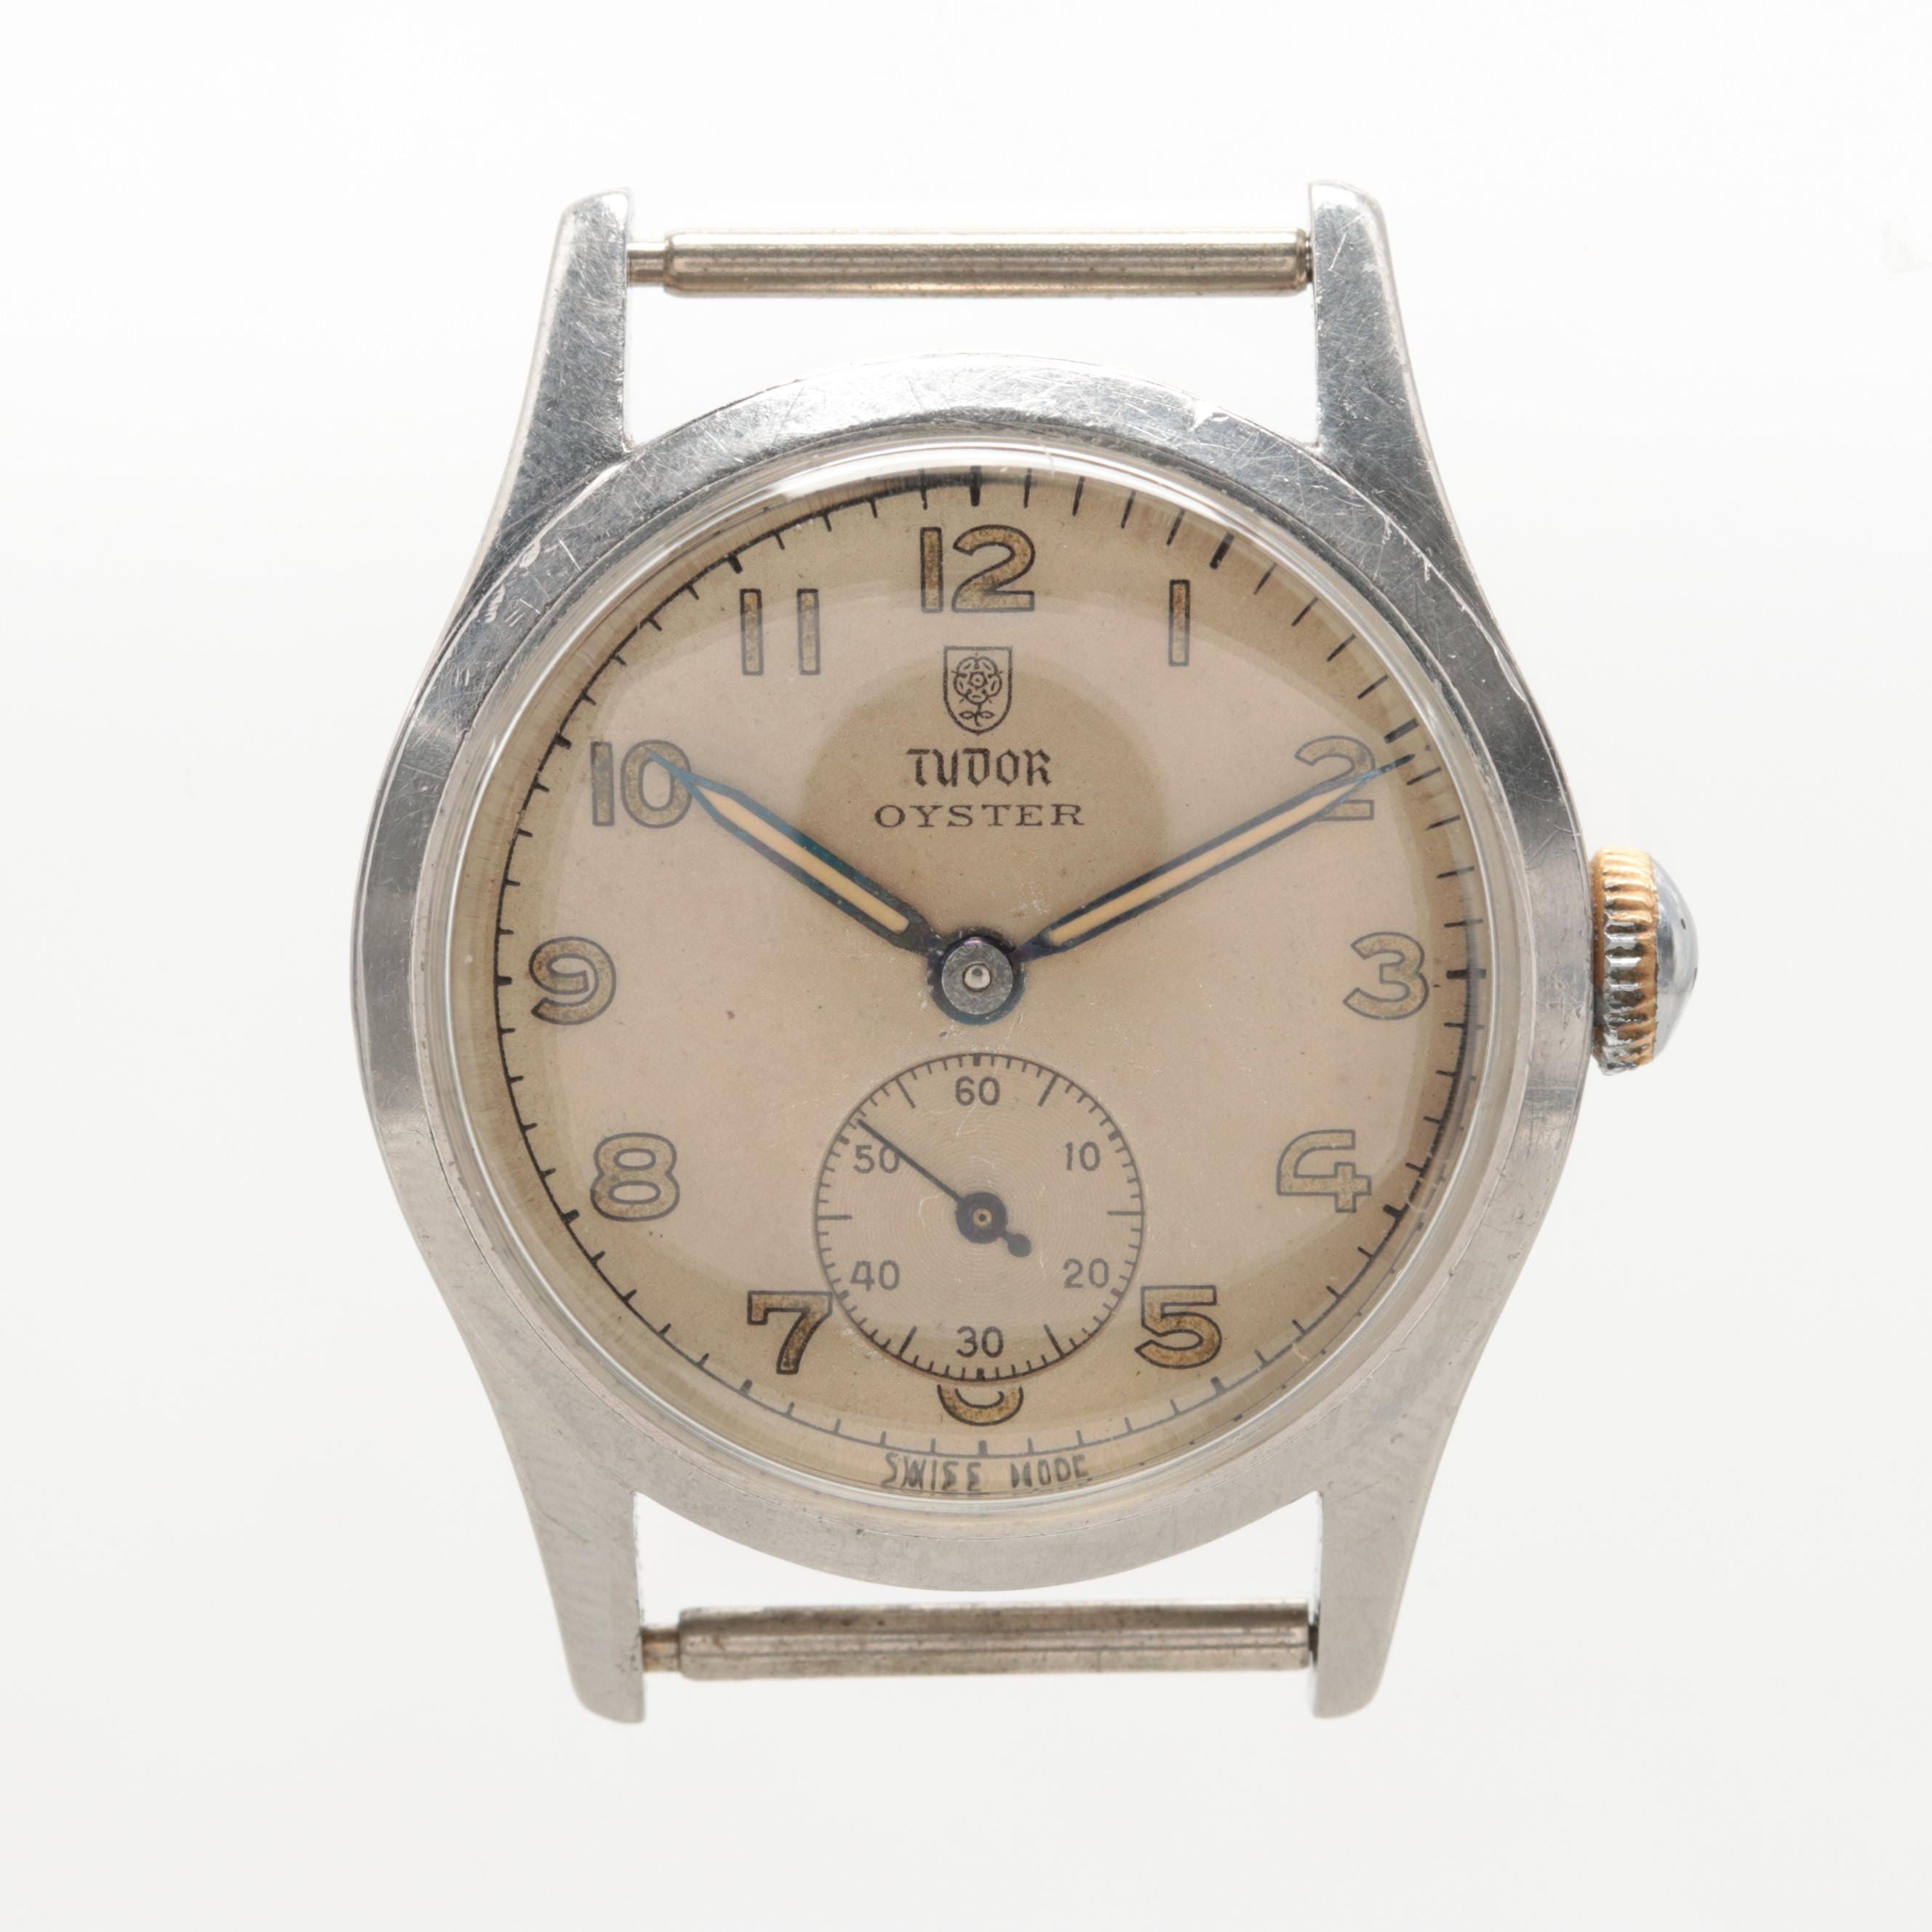 Tudor Oyster Stainless Steel Wristwatch